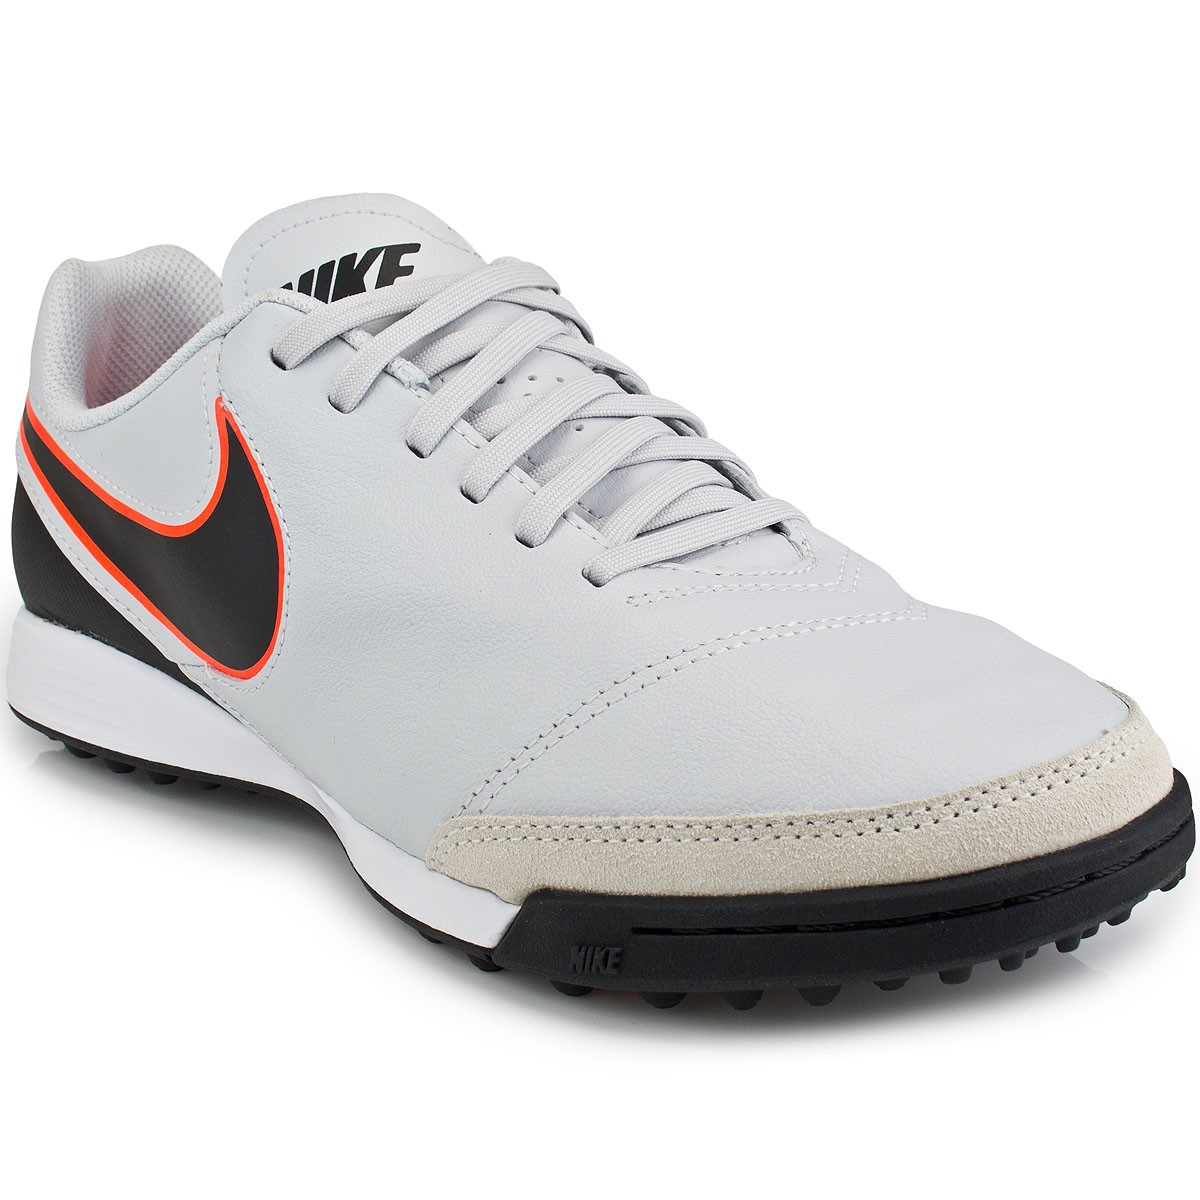 26e9f5c905 Chuteira Nike Tiempo Genio II Leather TF